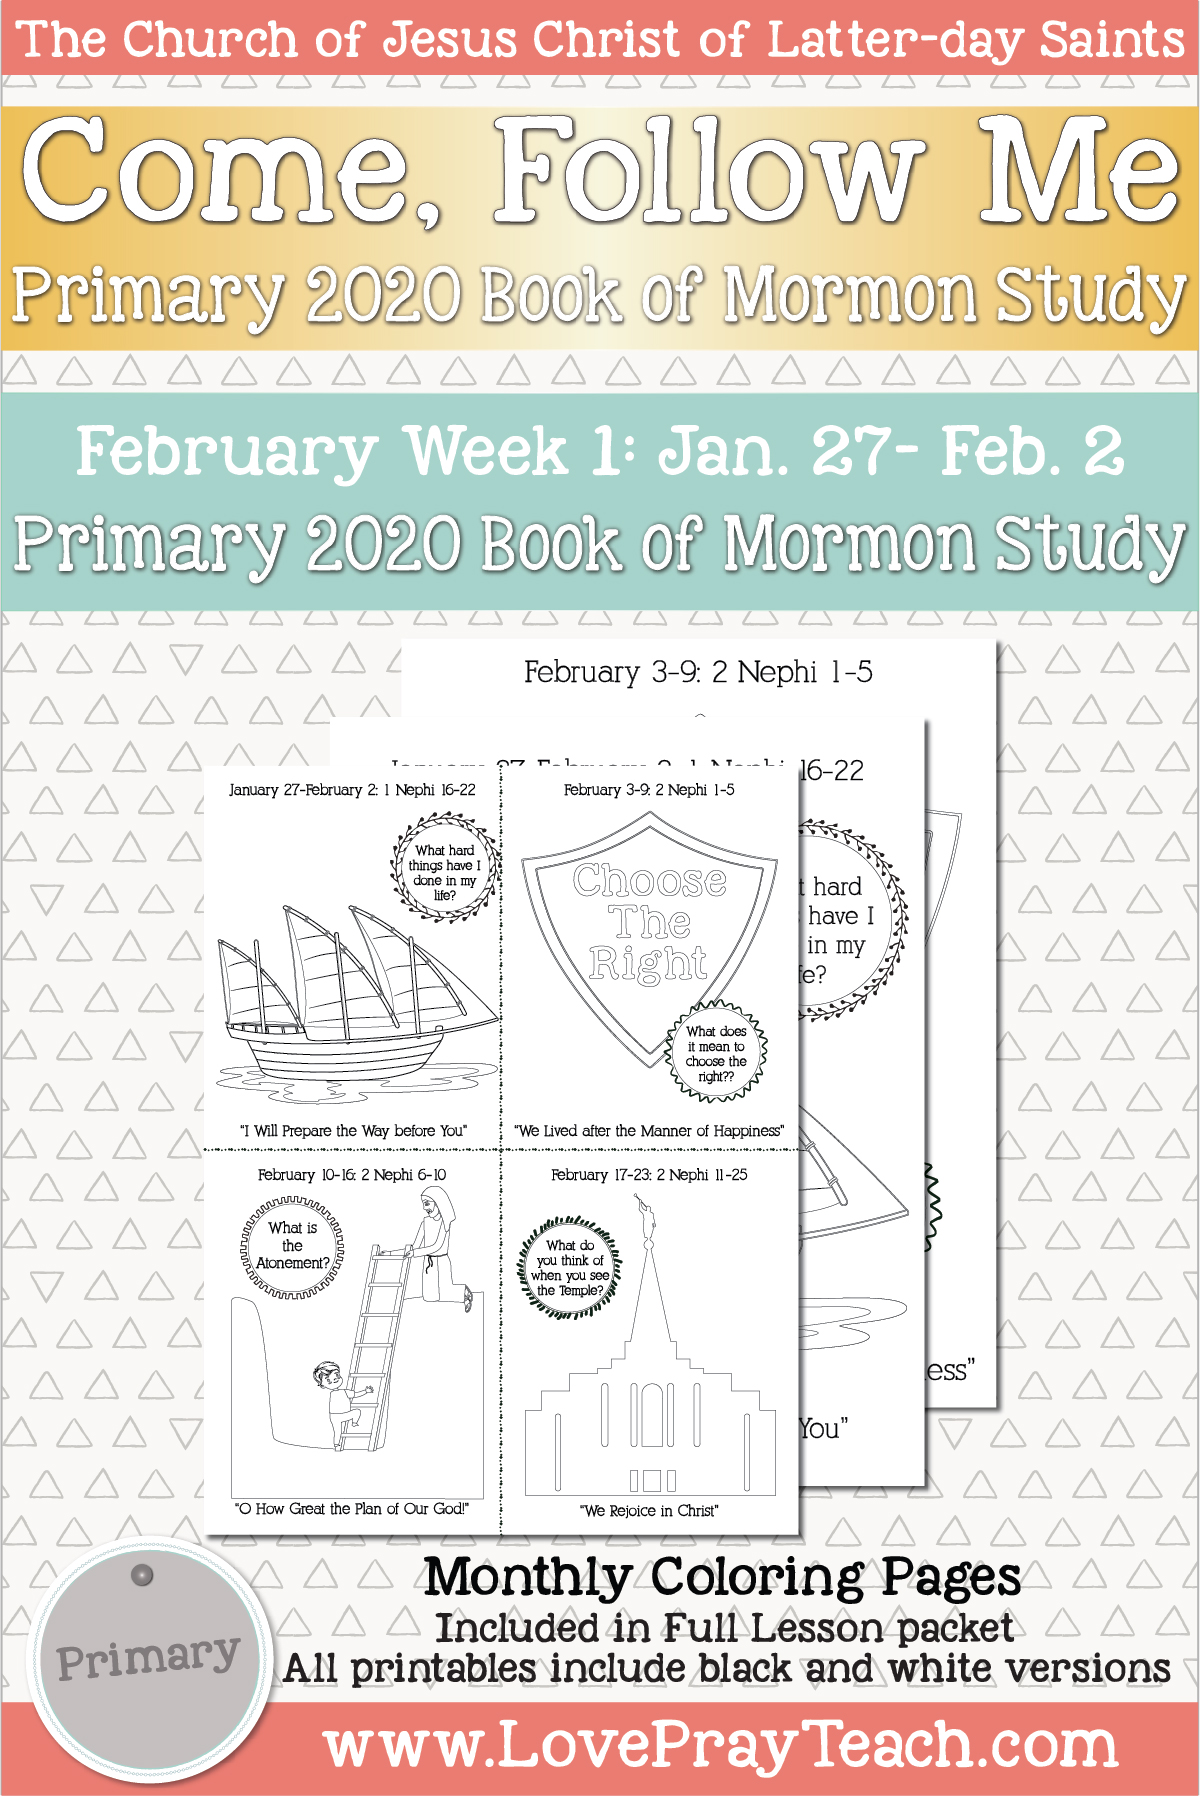 """Come, Follow Me for Primary January Week 4  January 20-26  1 Nephi 11–15 """"Armed with Righteousness and the Power of God"""" Printable Lesson Packet www.LovePrayTeach.com"""